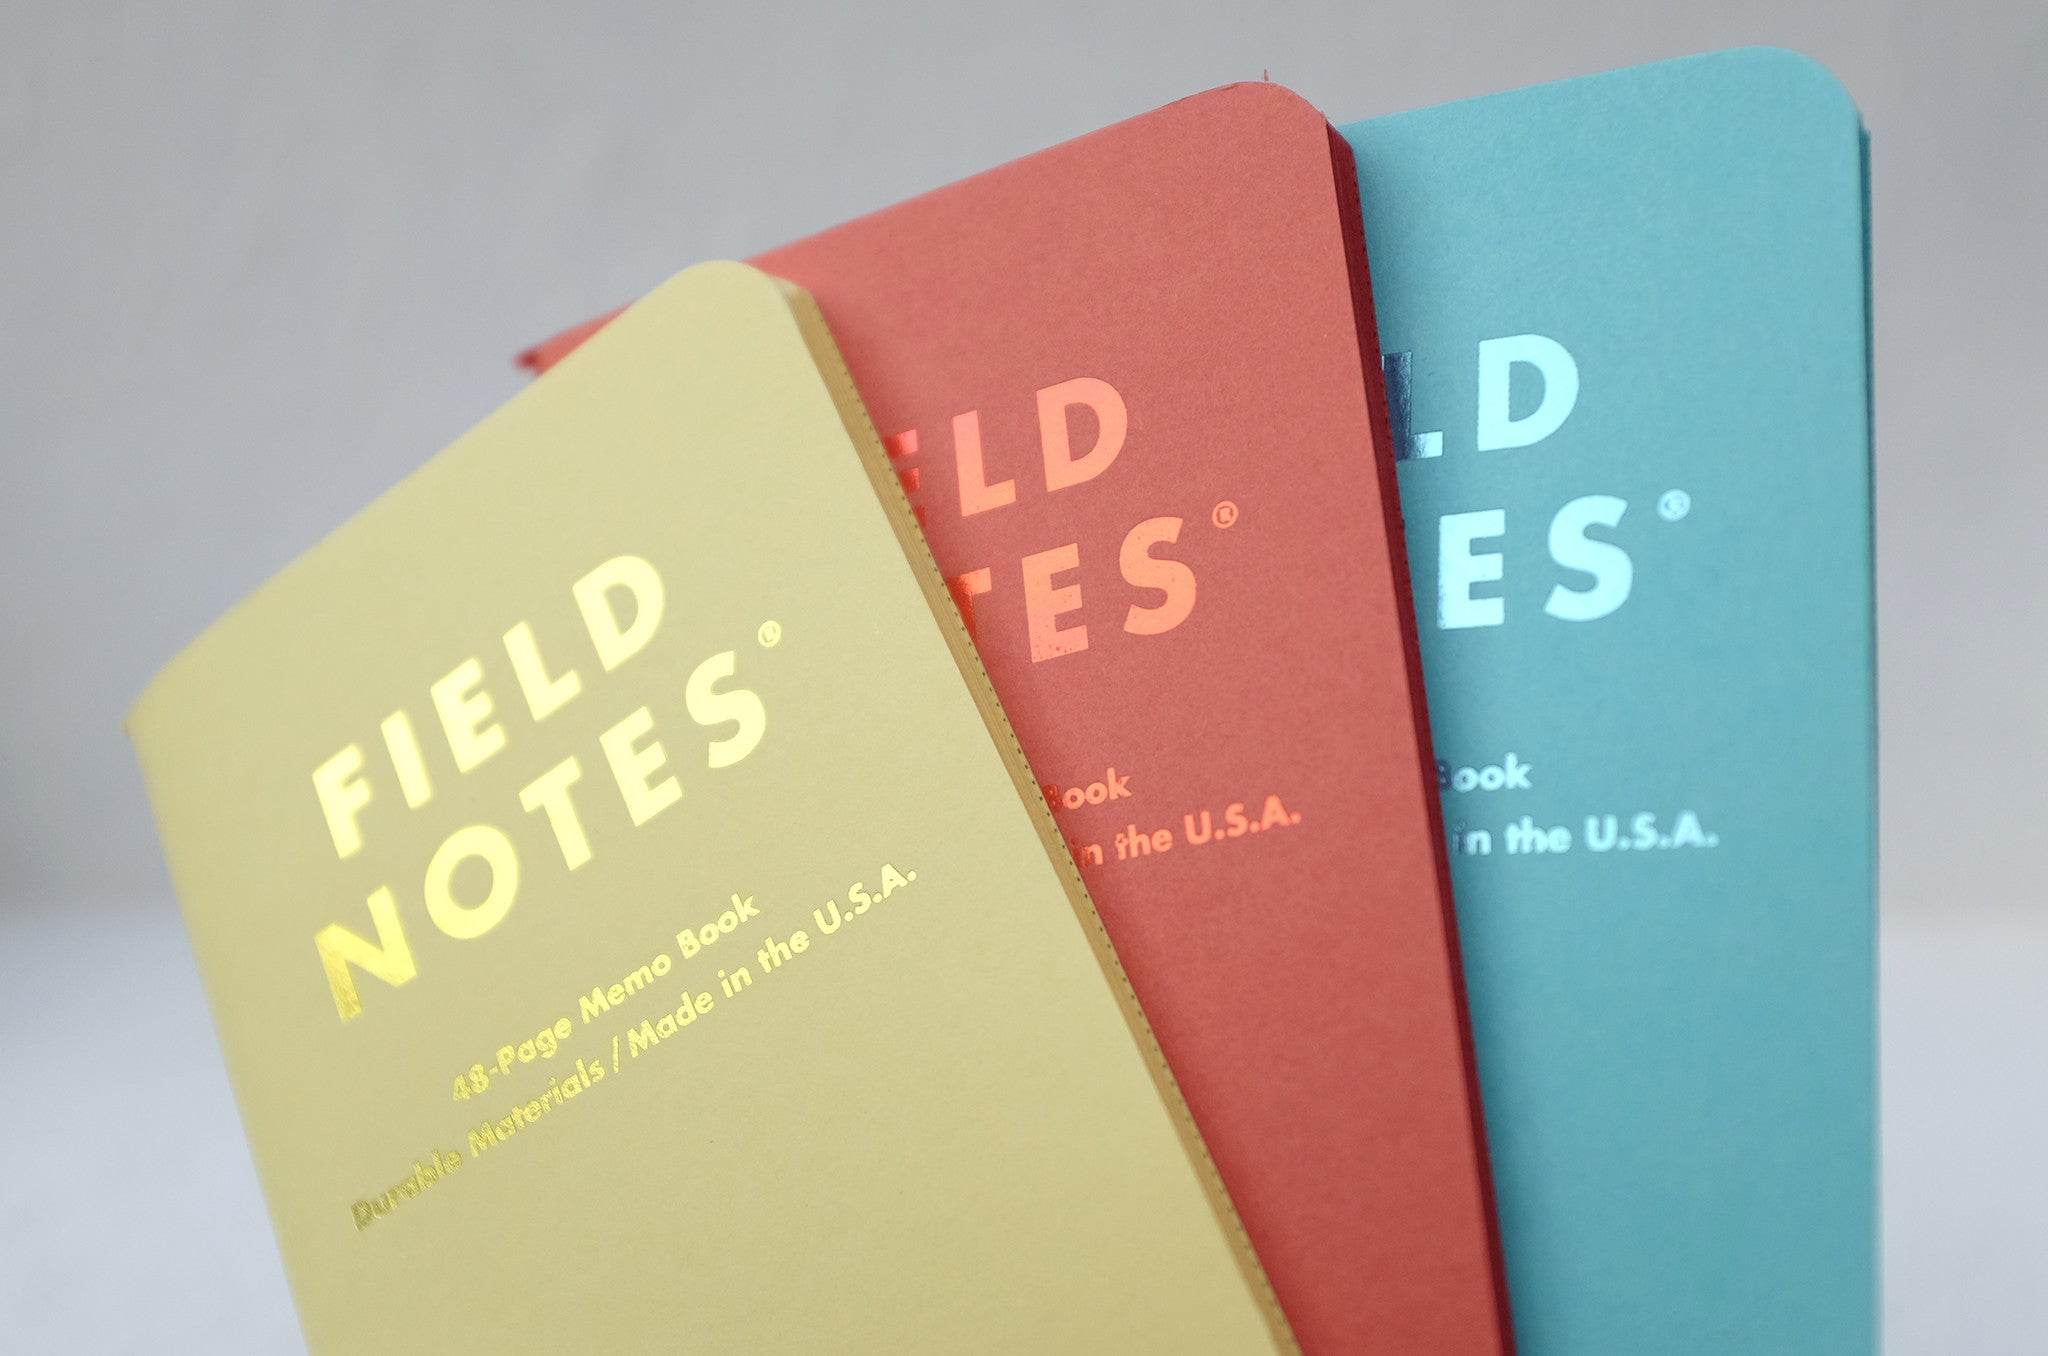 Field Notes notebooks - 'Sweet Tooth' 3-pack